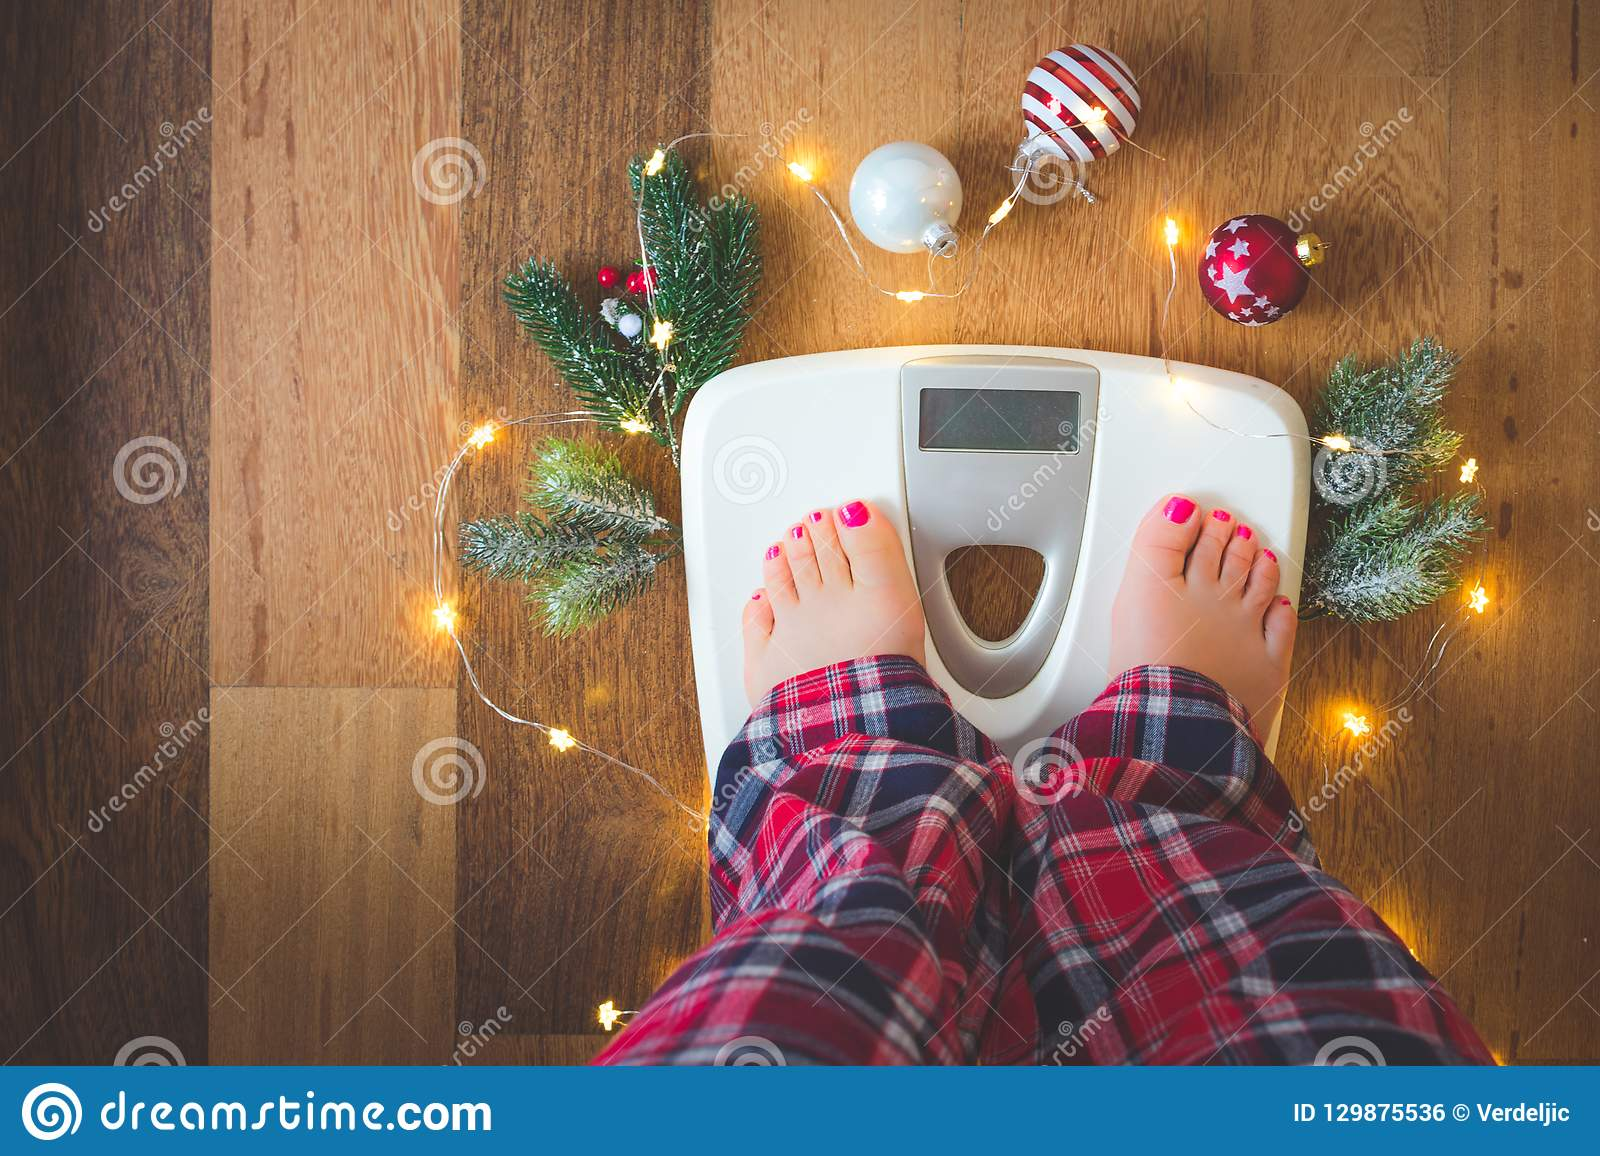 Top view of female legs in pajamas on a white weight scale with Christmas decorations and lights on wooden background